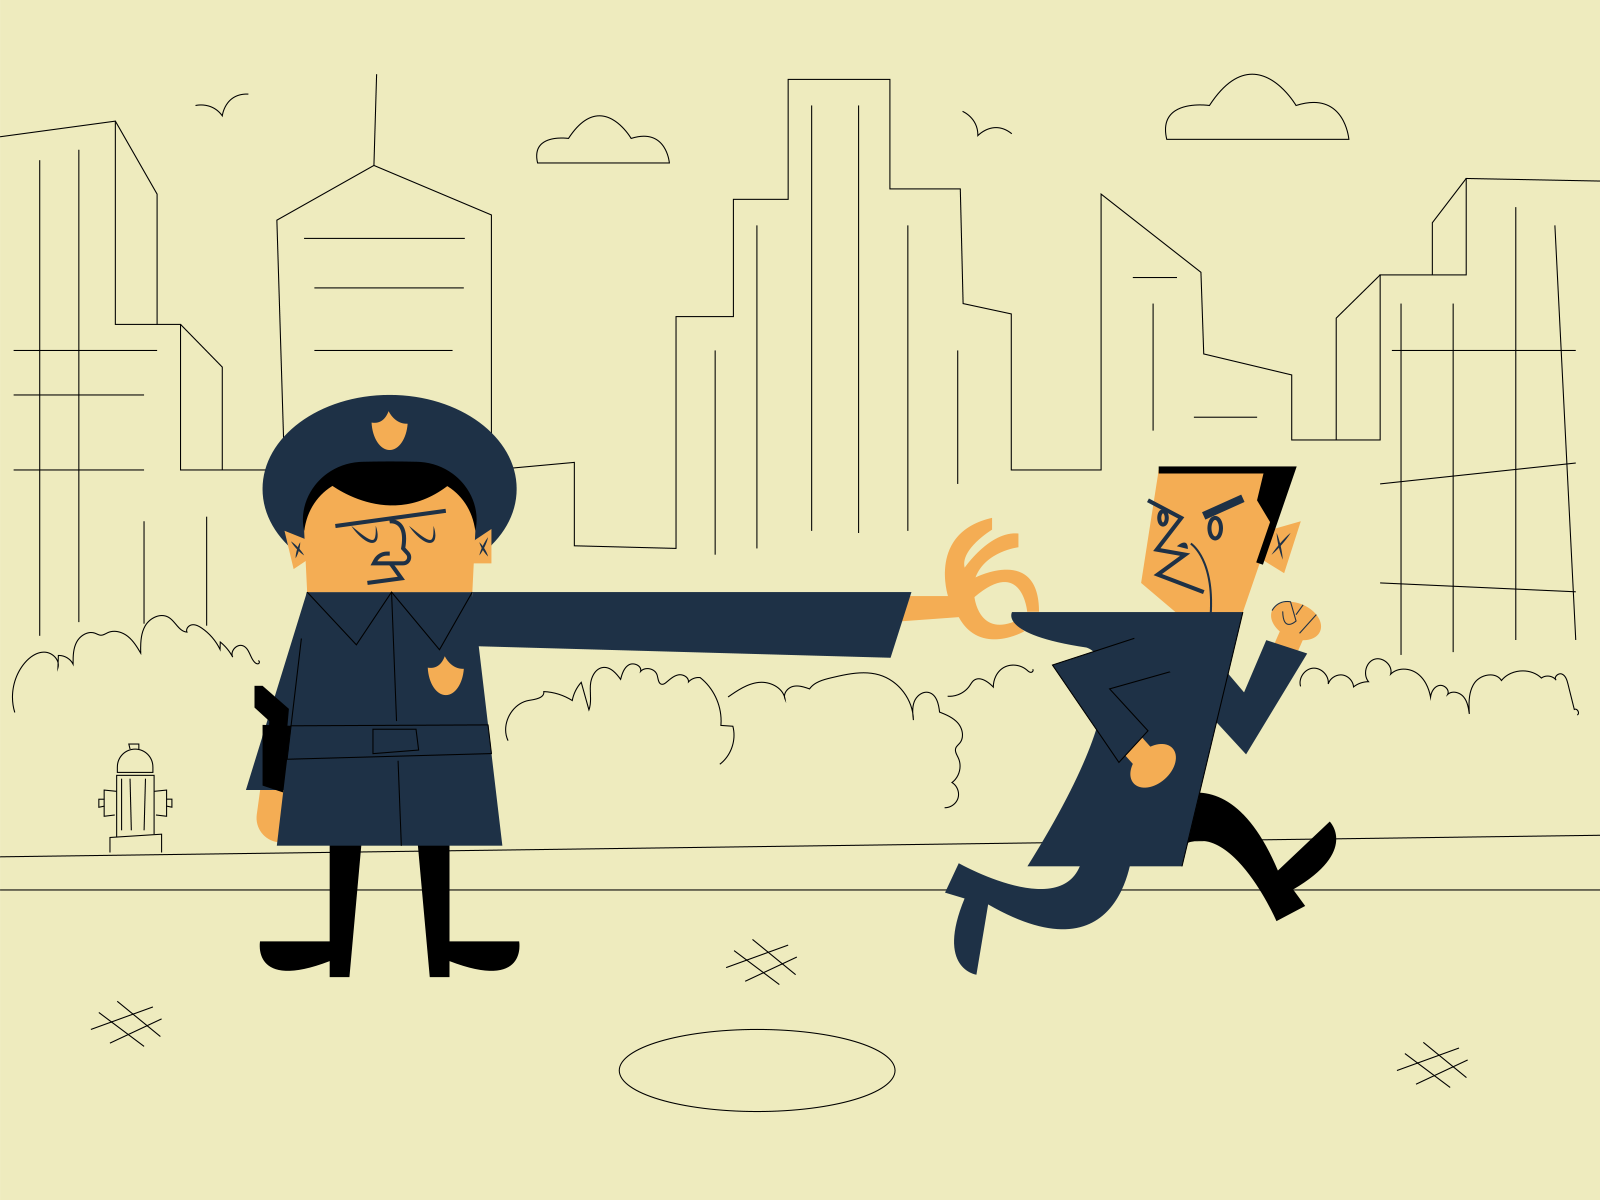 Long Arm of the Law by Rick Hines on Dribbble